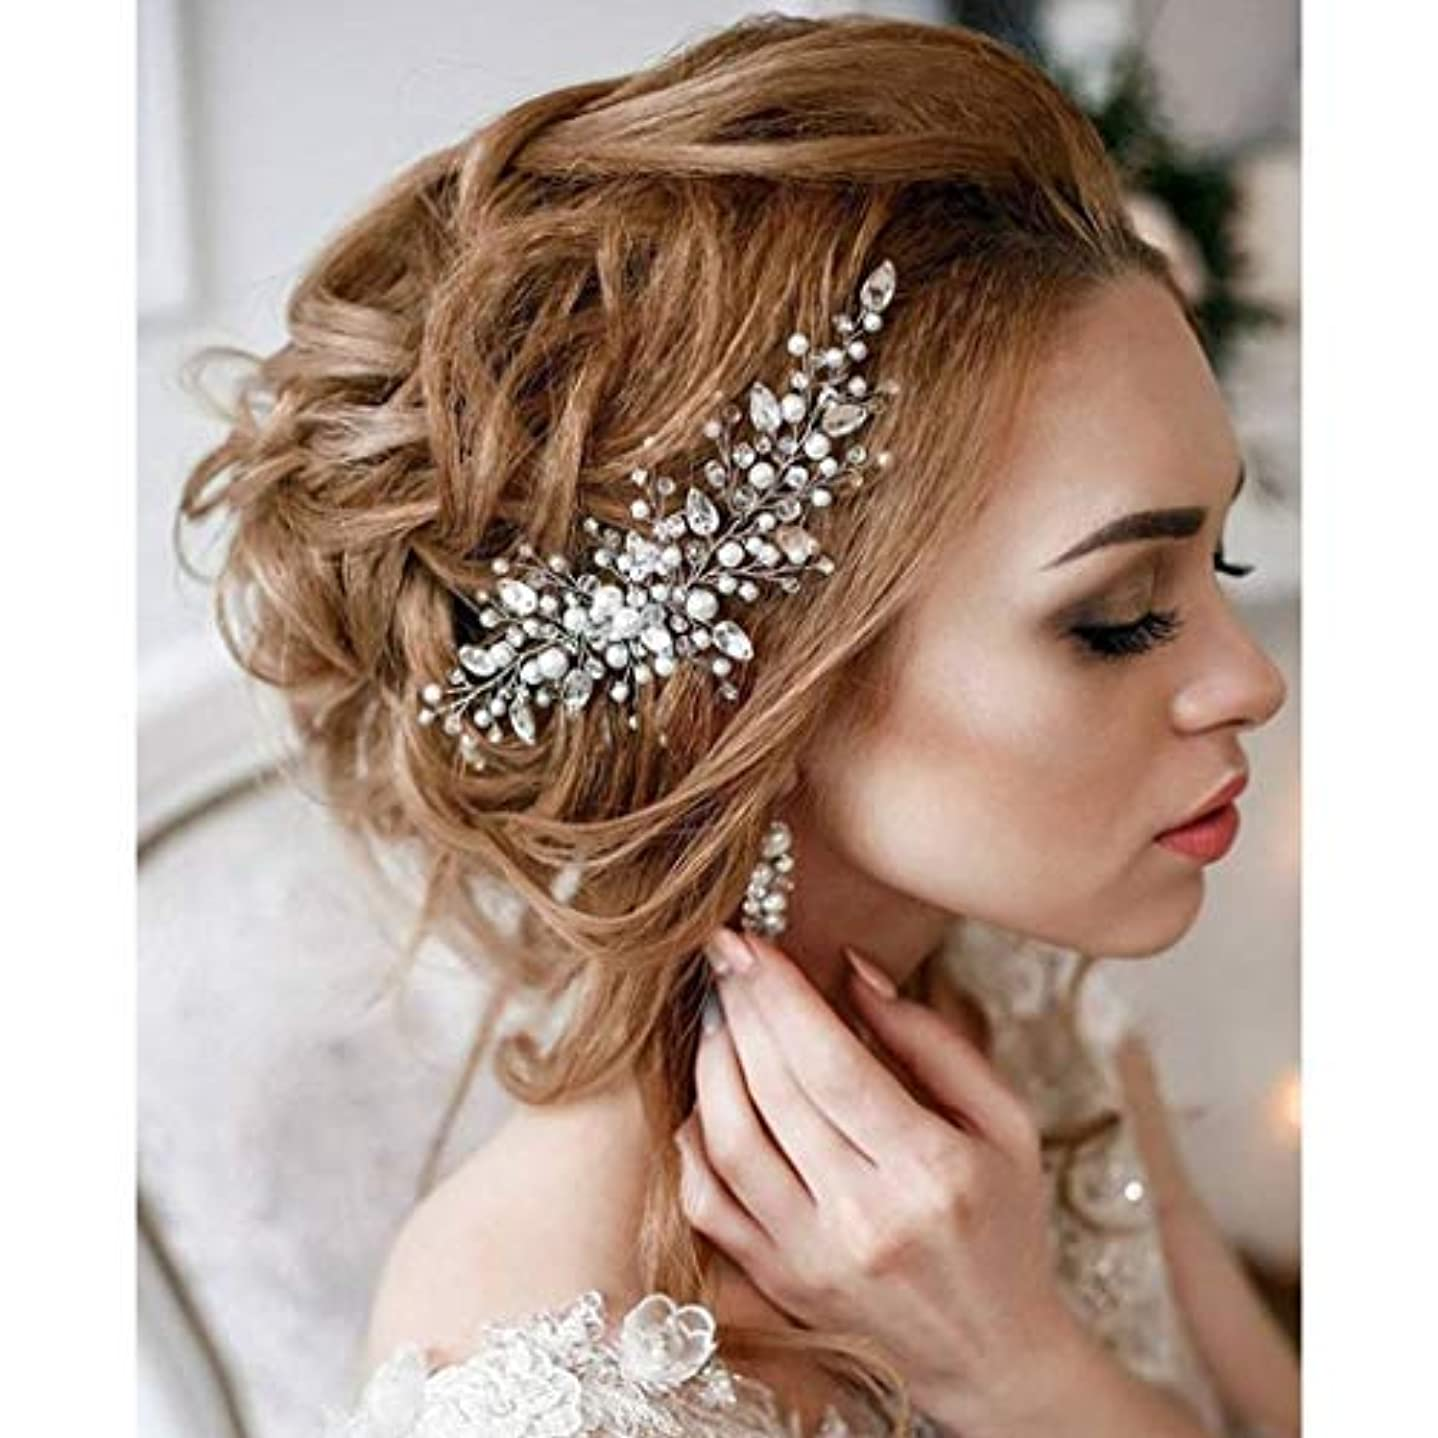 演じる口紀元前Aukmla Bride Wedding Hair Combs Bridal Hair Accessories Decorative for Brides and Bridesmaids [並行輸入品]